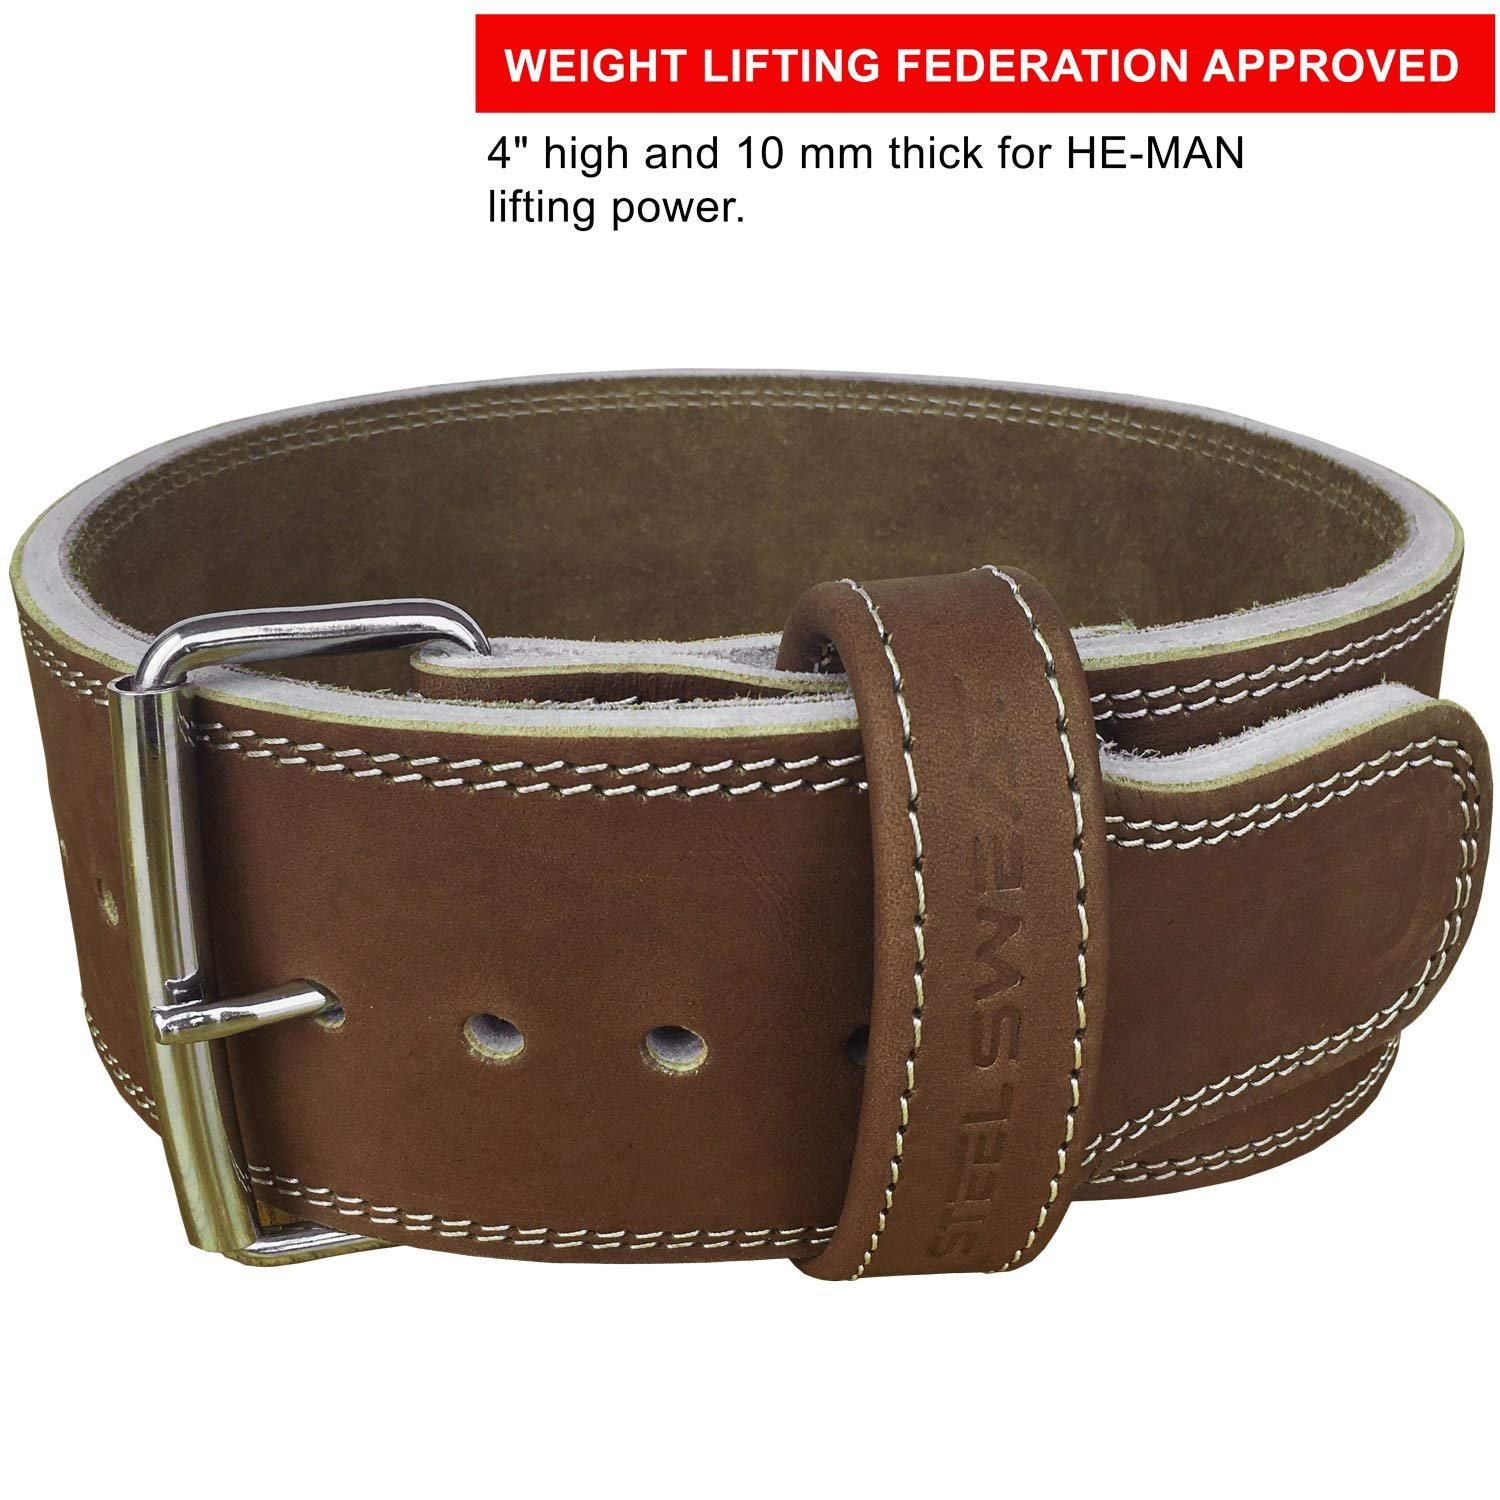 Steel Sweat Weight Lifting Belt - 4 Inches Wide by 10mm - Single Prong Powerlifting Belt That's Heavy Duty - Vegetable Tanned Leather - Hyde Small by Steel Sweat (Image #9)